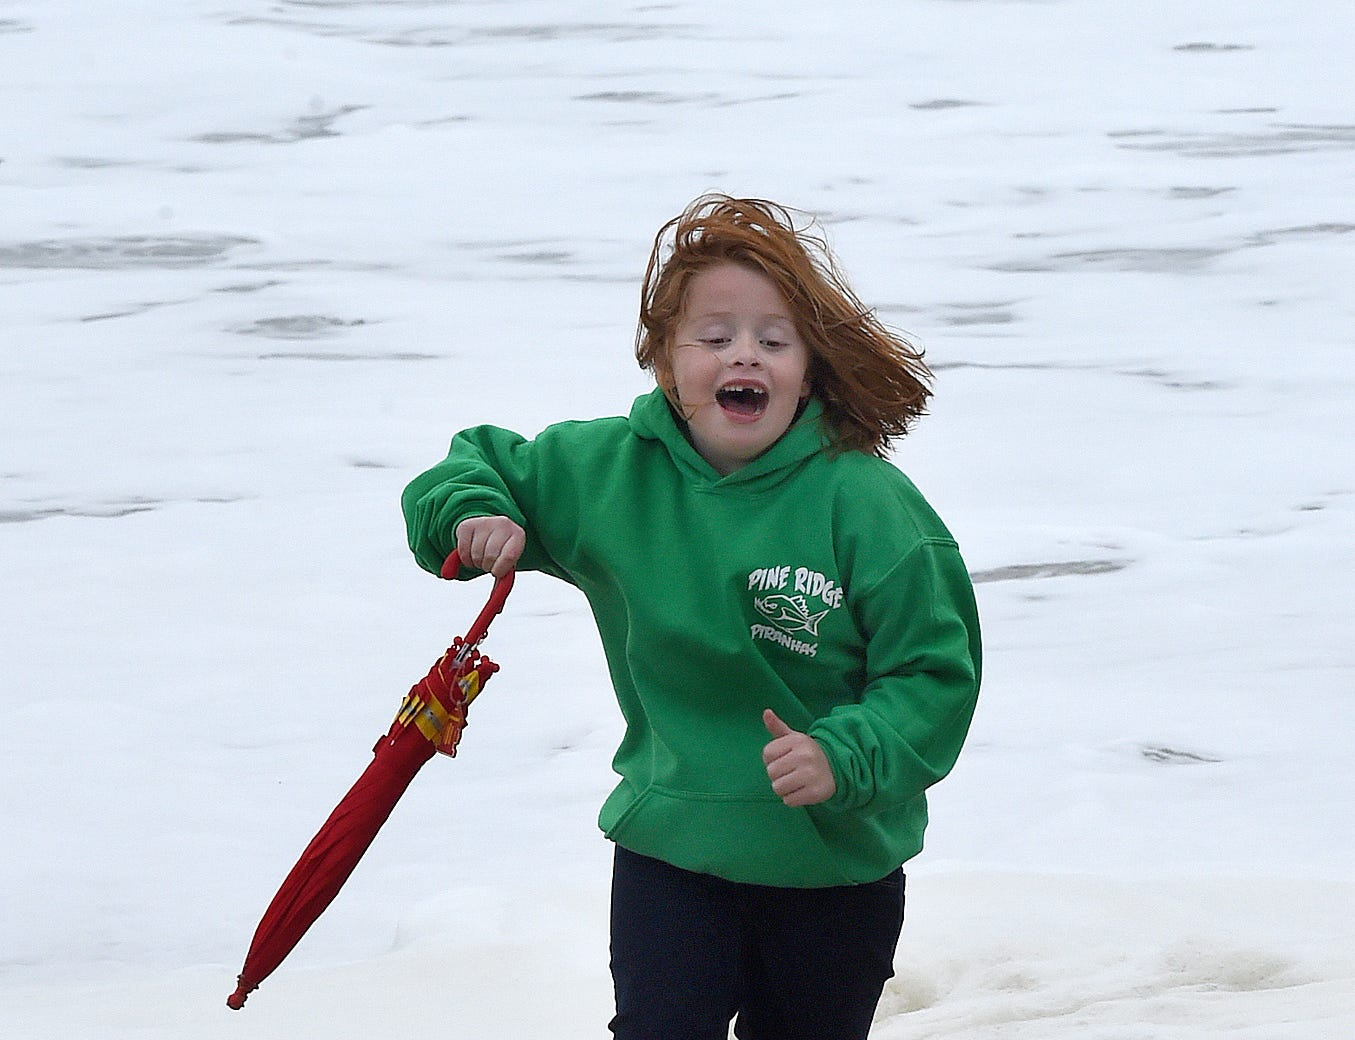 Aubrey Chmielewski 7 from Towson, Md., runs from the water as Rehoboth Beach's Annual Sea Witch Festival is underway despite a Nor'easter passing over the beach area. The ocean is coming up to the Dune Line as sea foam spray's the beach as high winds have blown sand on the boardwalk. There was a Kids Bike Parade on the boardwalk Friday afternoon along with a Kids Train Ride in Grove Park.  Special to the News Journal / CHUCK SNYDER